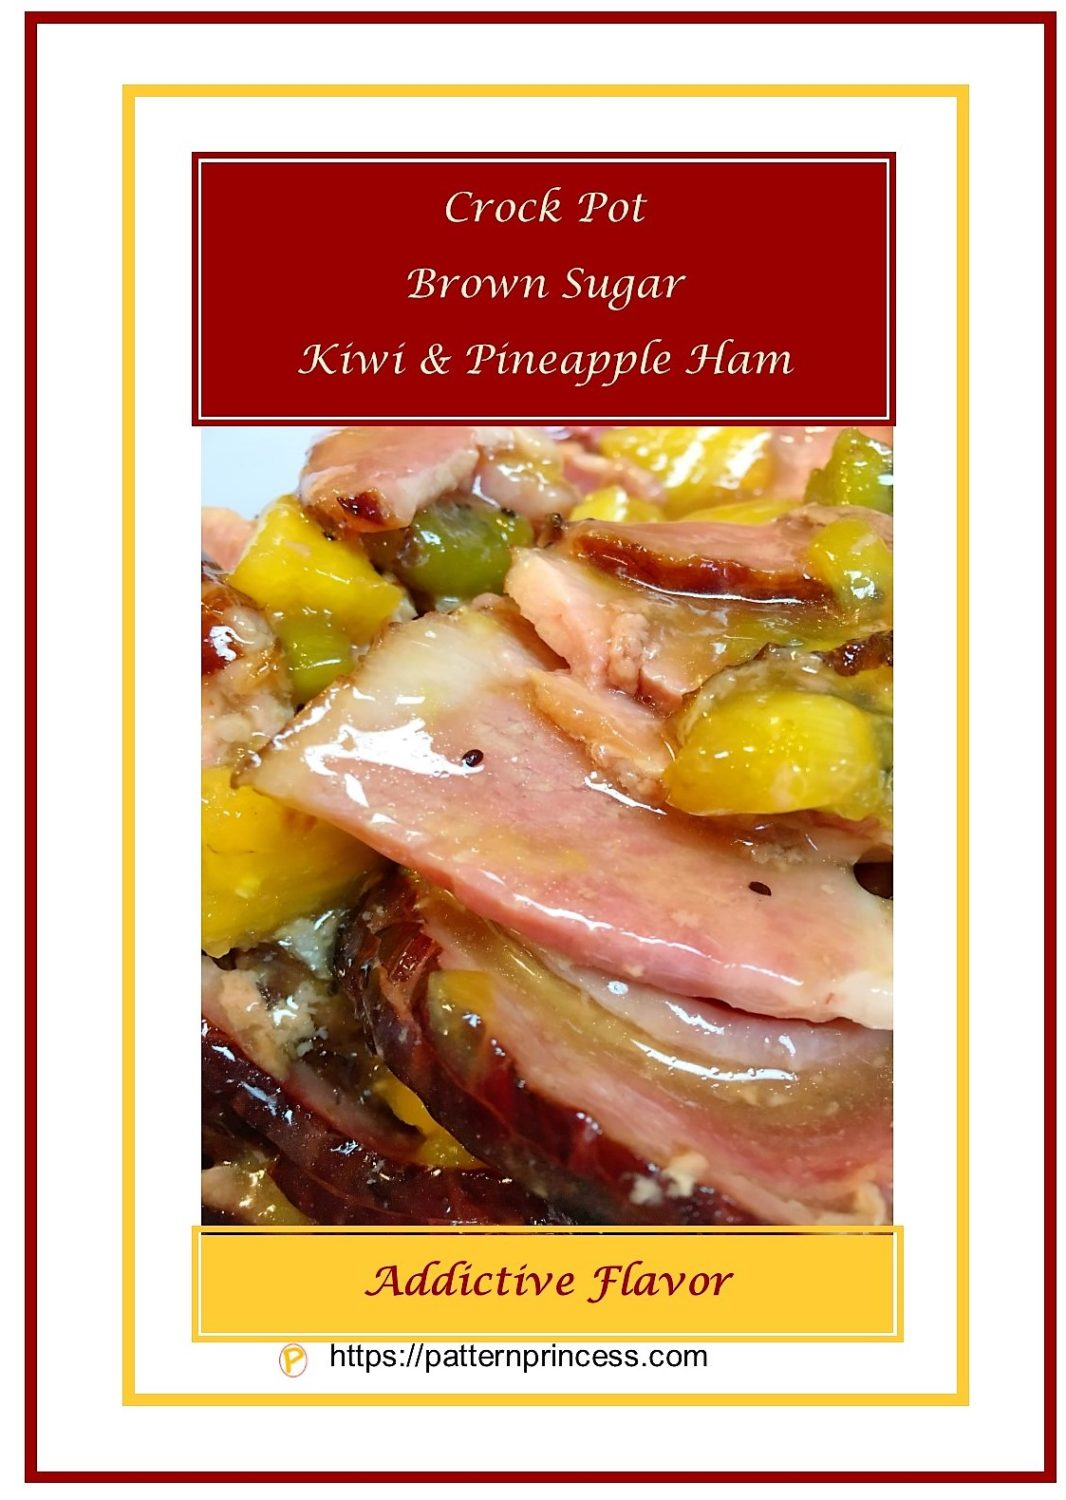 Crock Pot Brown Sugar Kiwi & Pineapple Ham 1